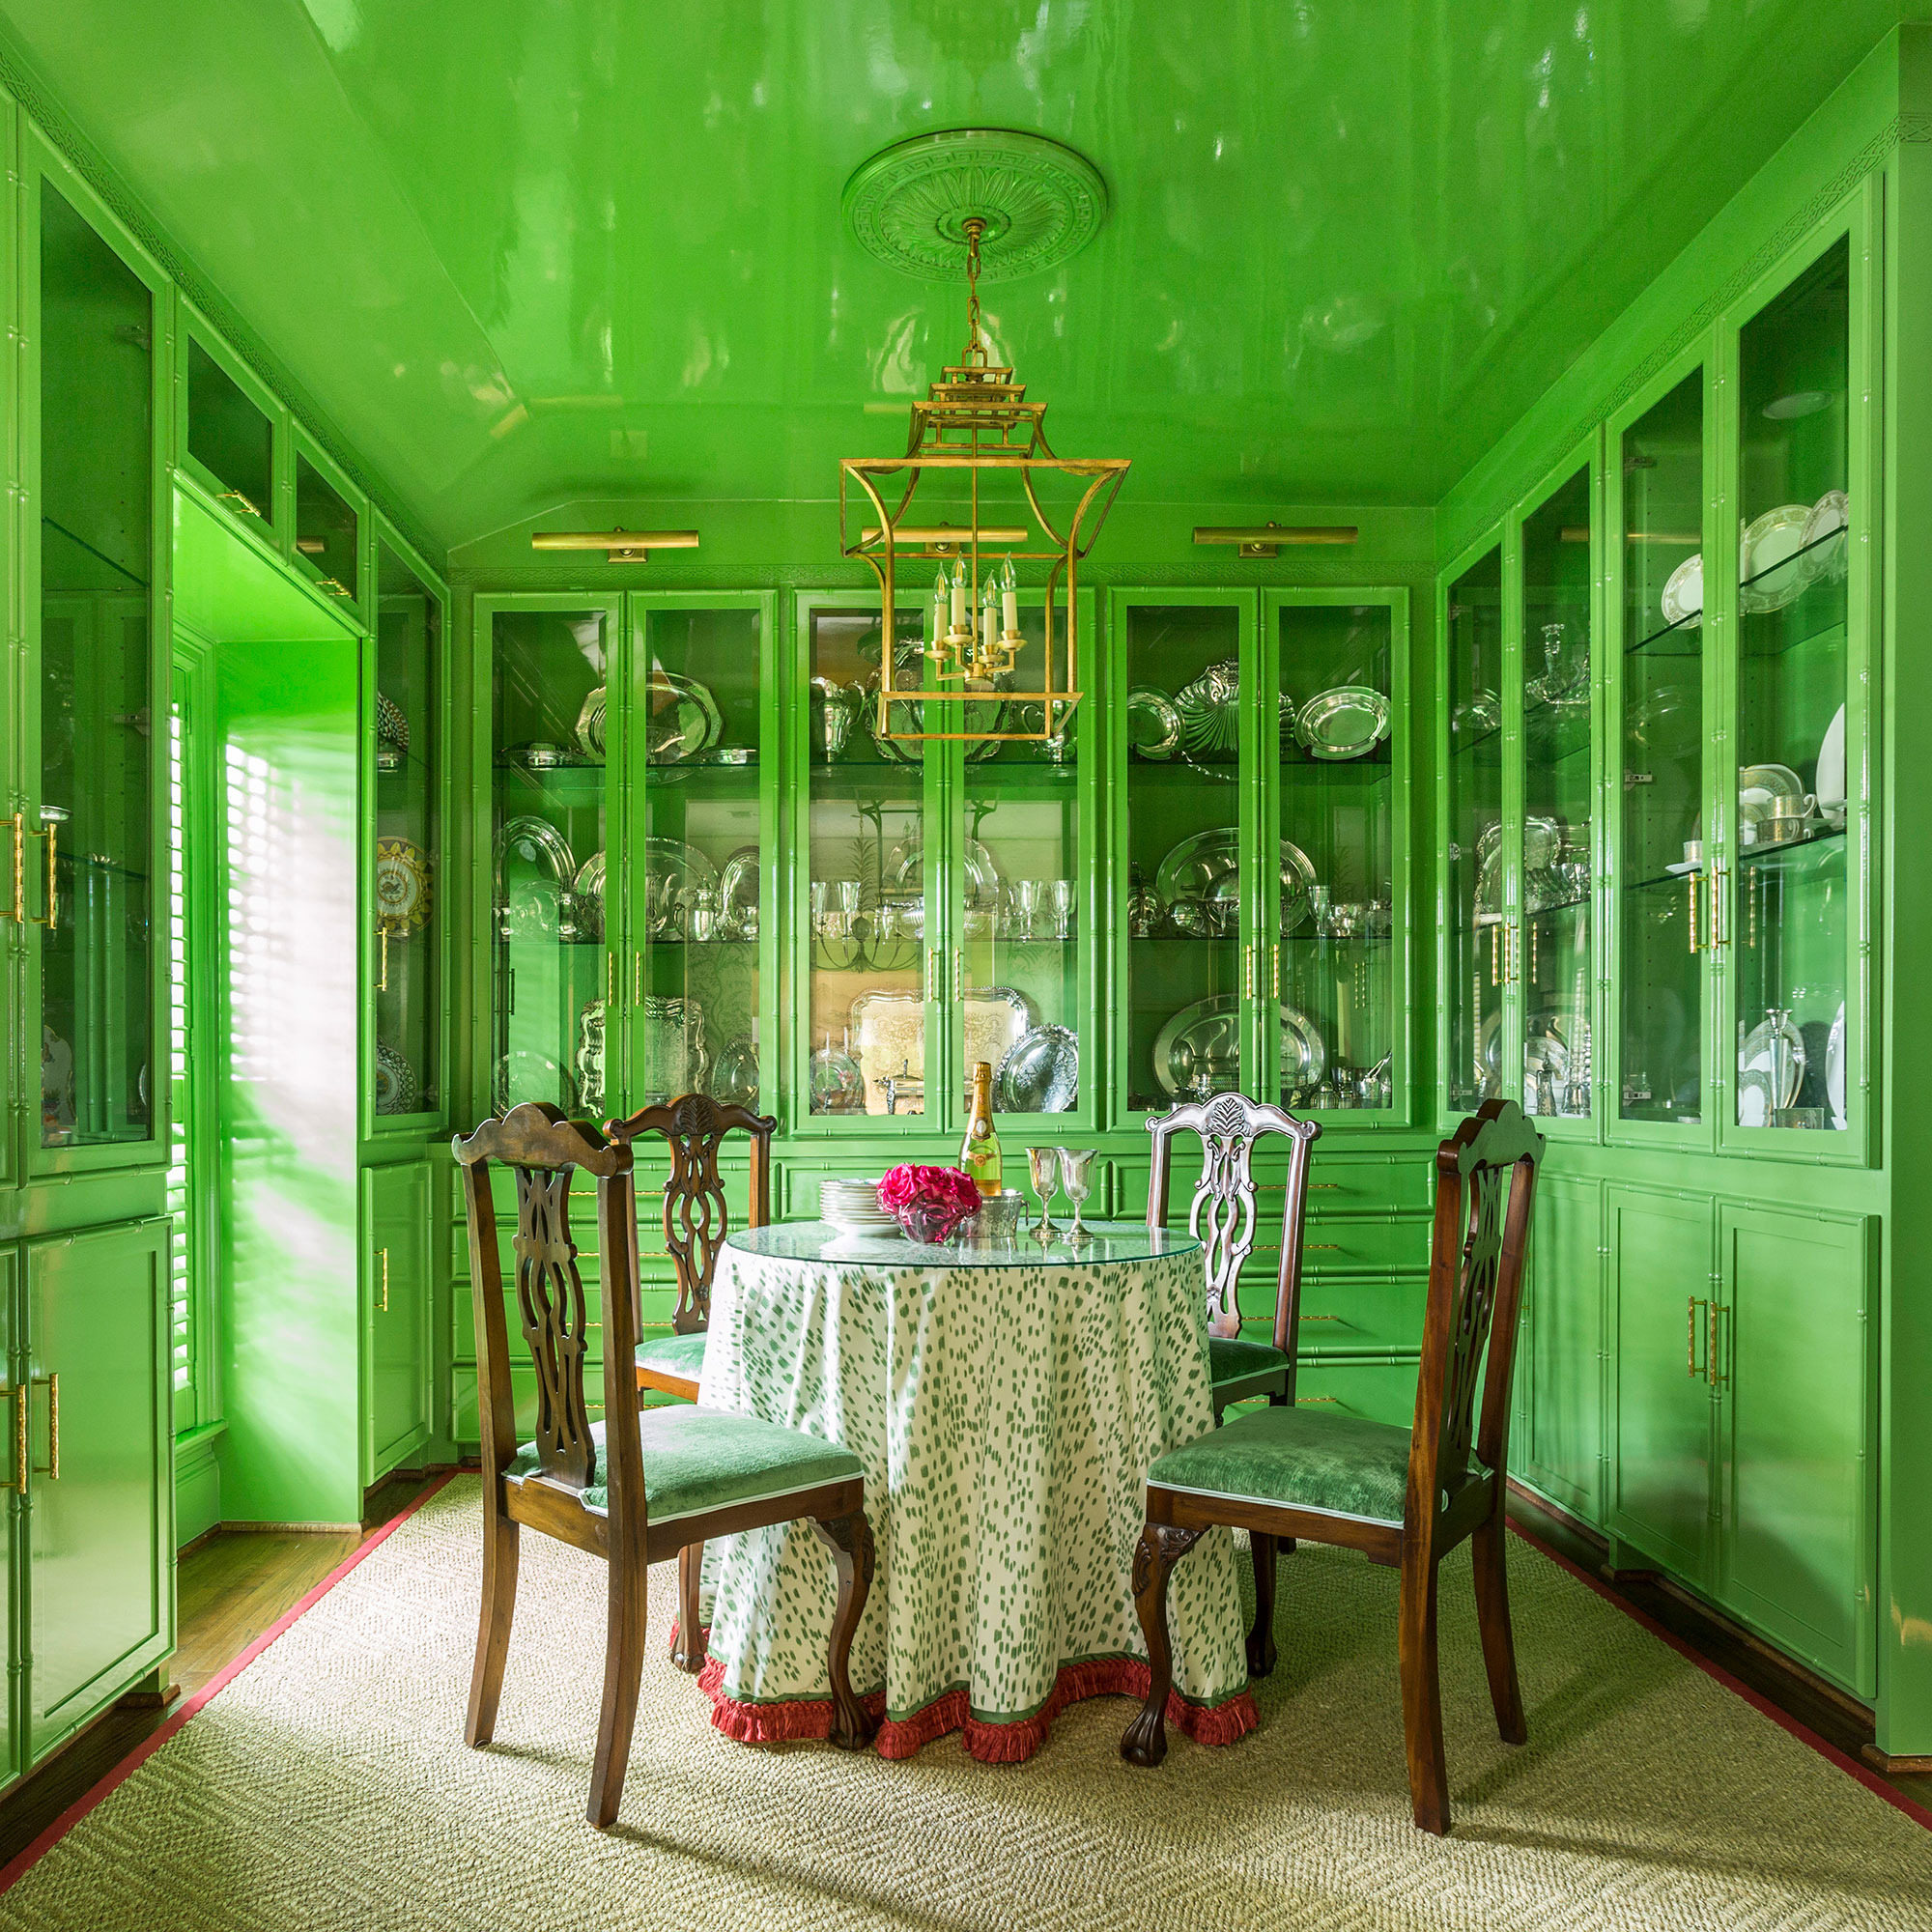 Dining Room Green Interiors Photography - Julie Soefer Photography